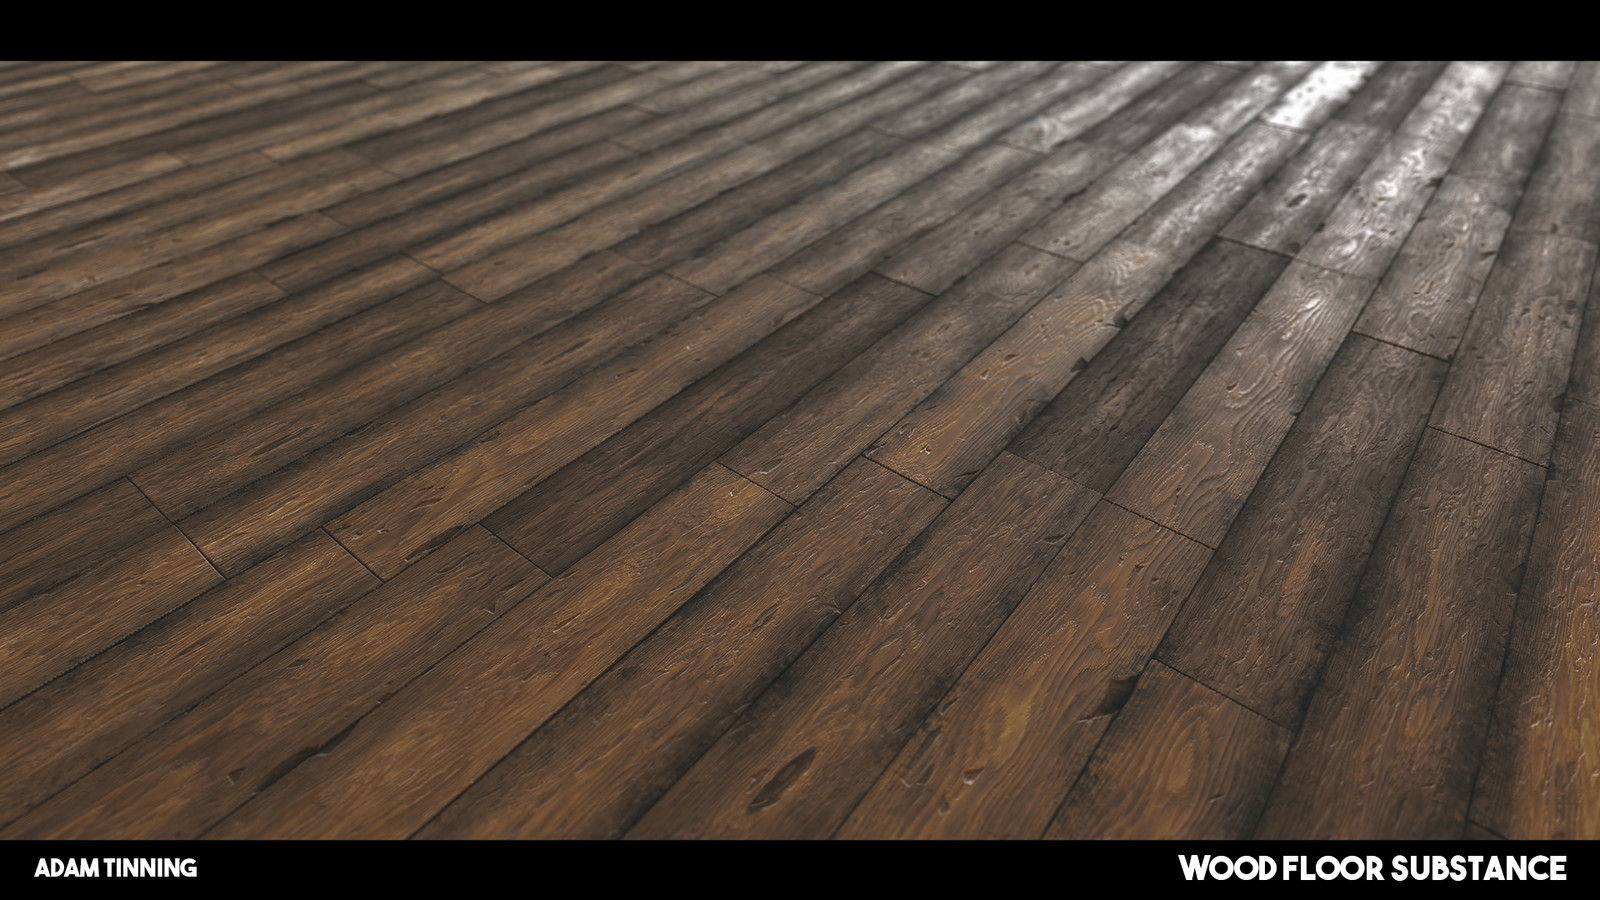 Wood Floor Substance